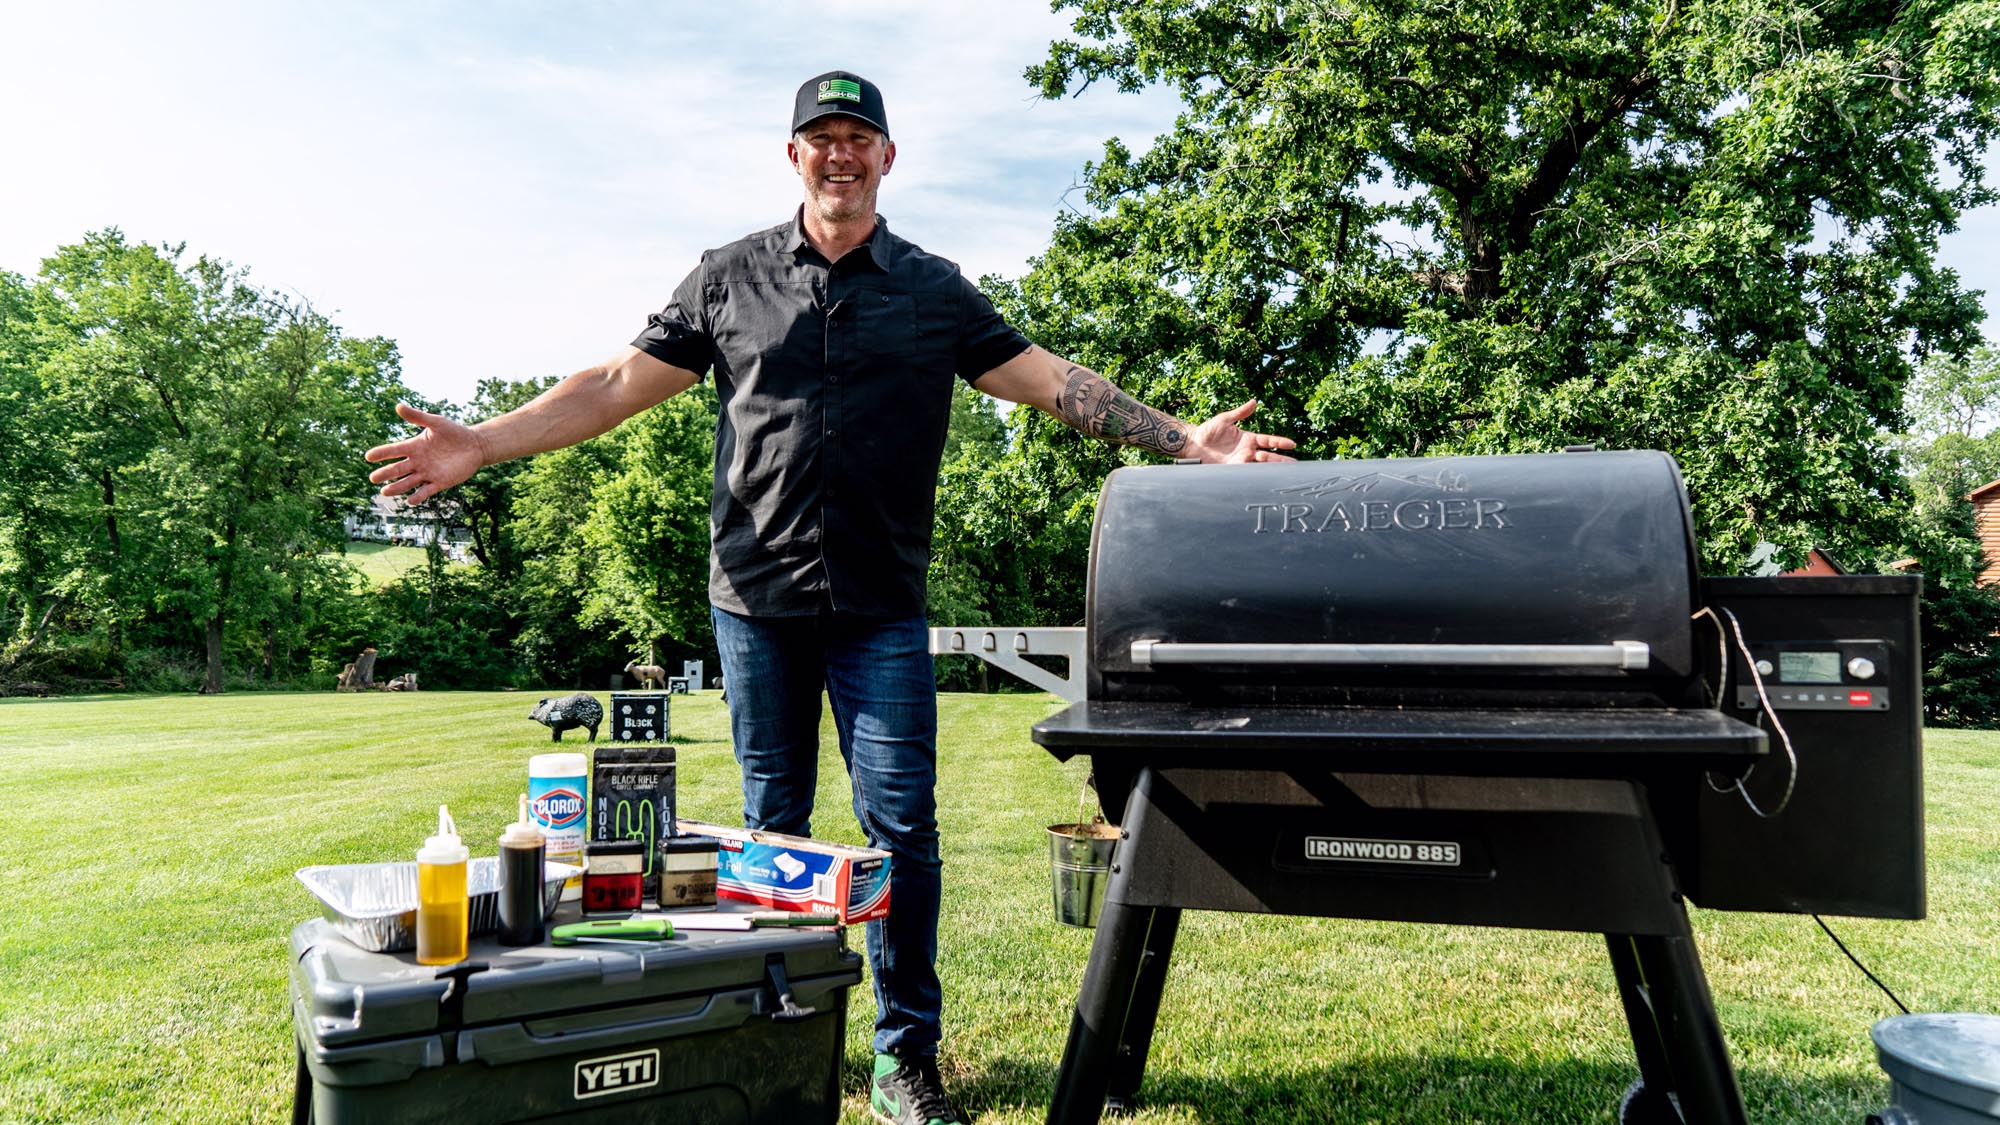 Traeger Grilling 101